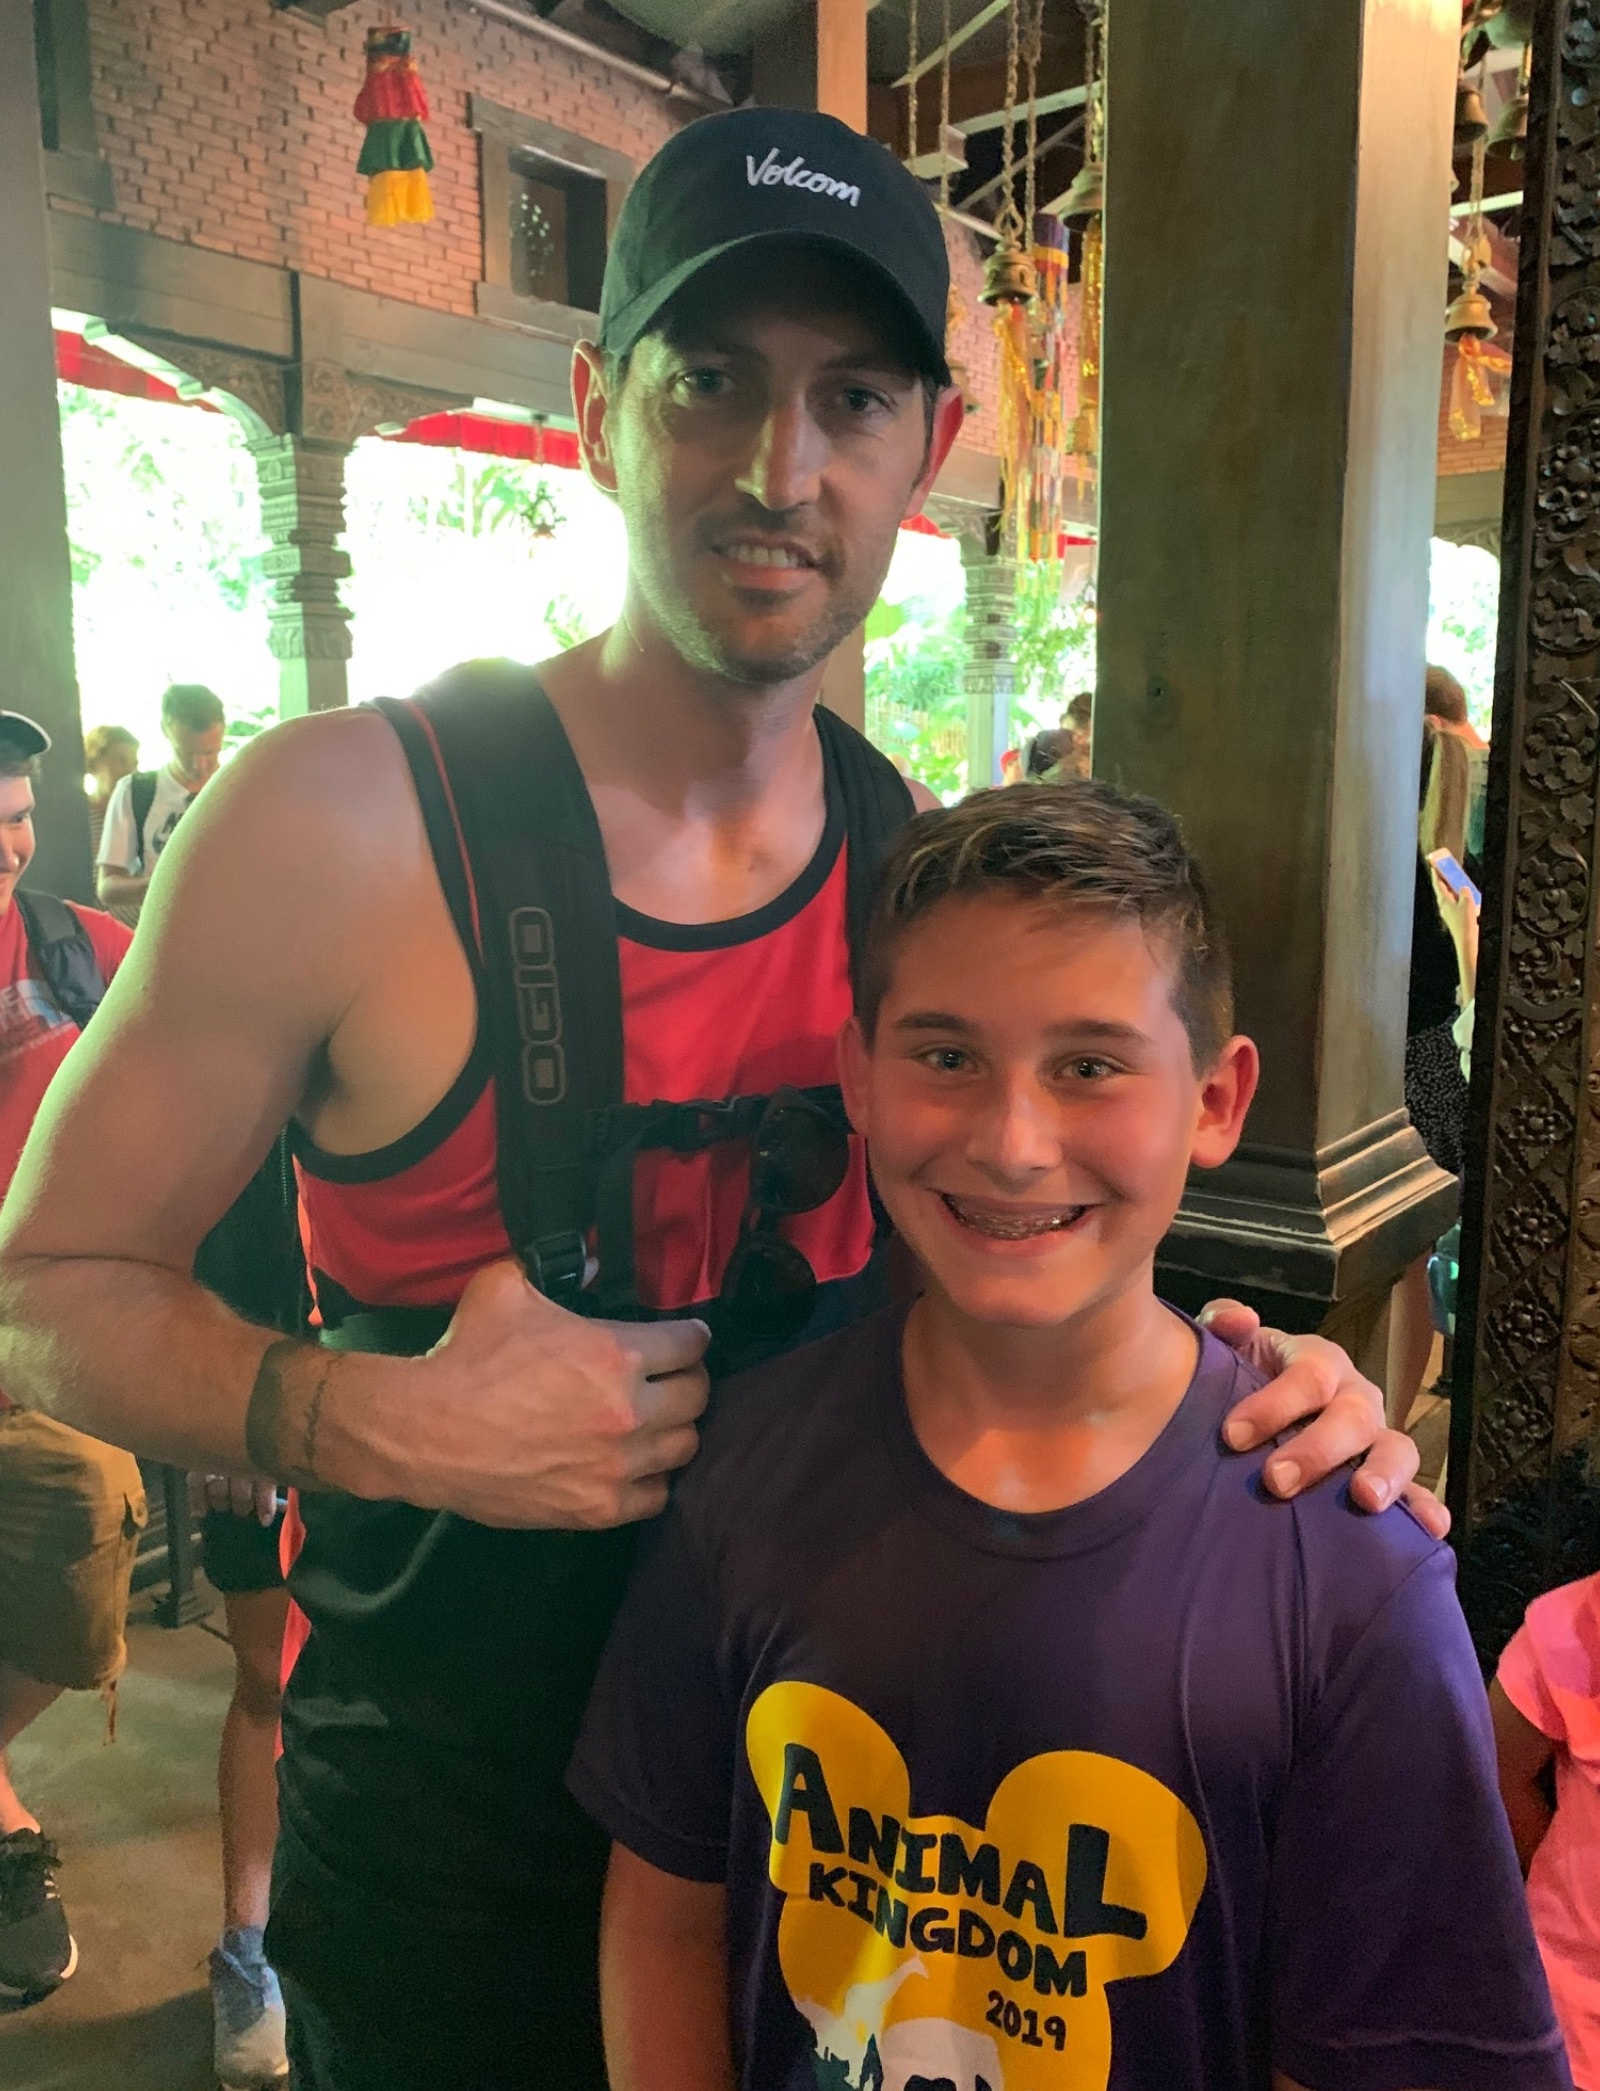 Former Bulls guard Kirk Hinrich poses with a fan at Animal Kingdom